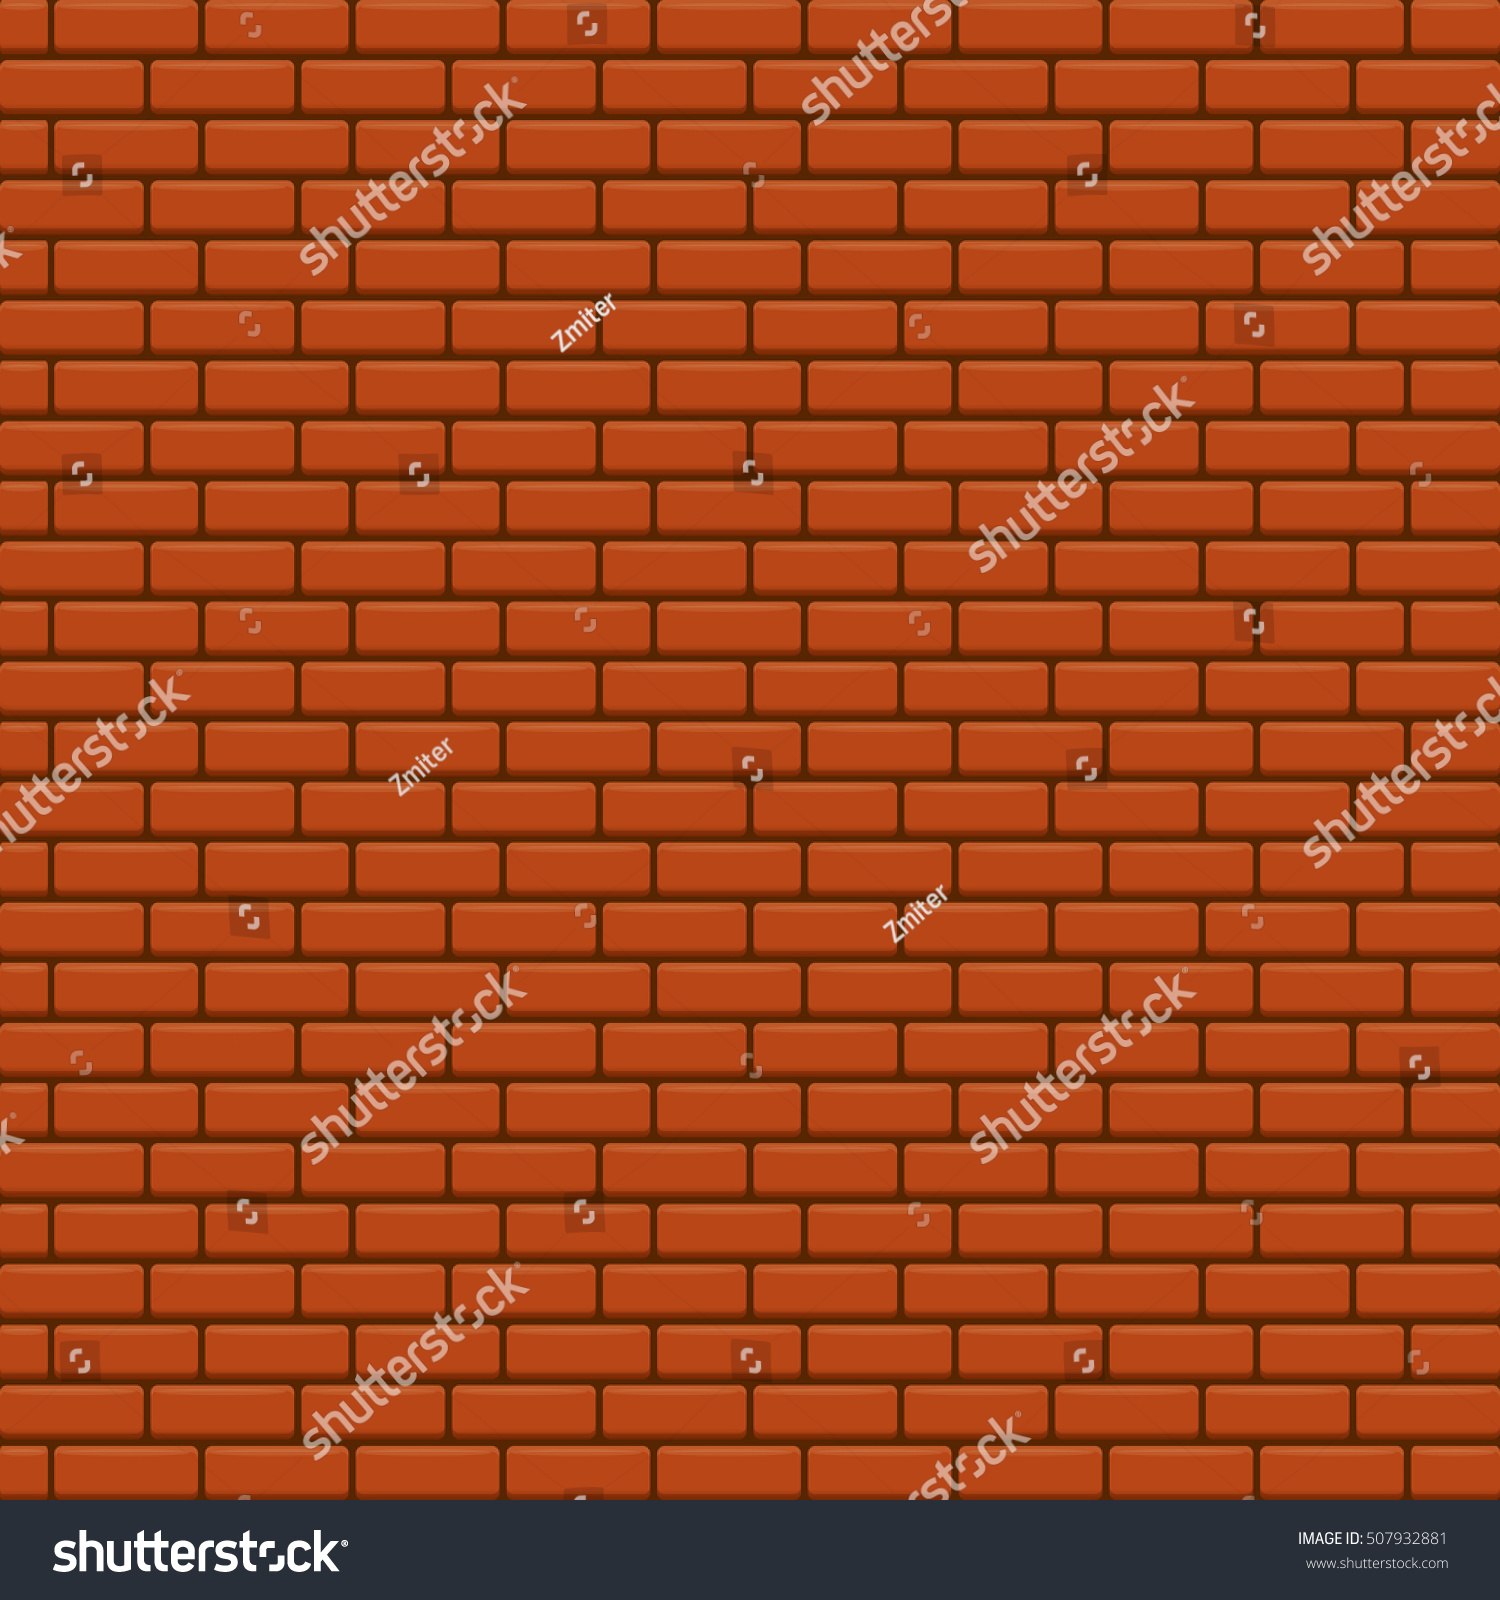 red brick wall vector background. red brick wall seamless pattern vector  backdrop or layout